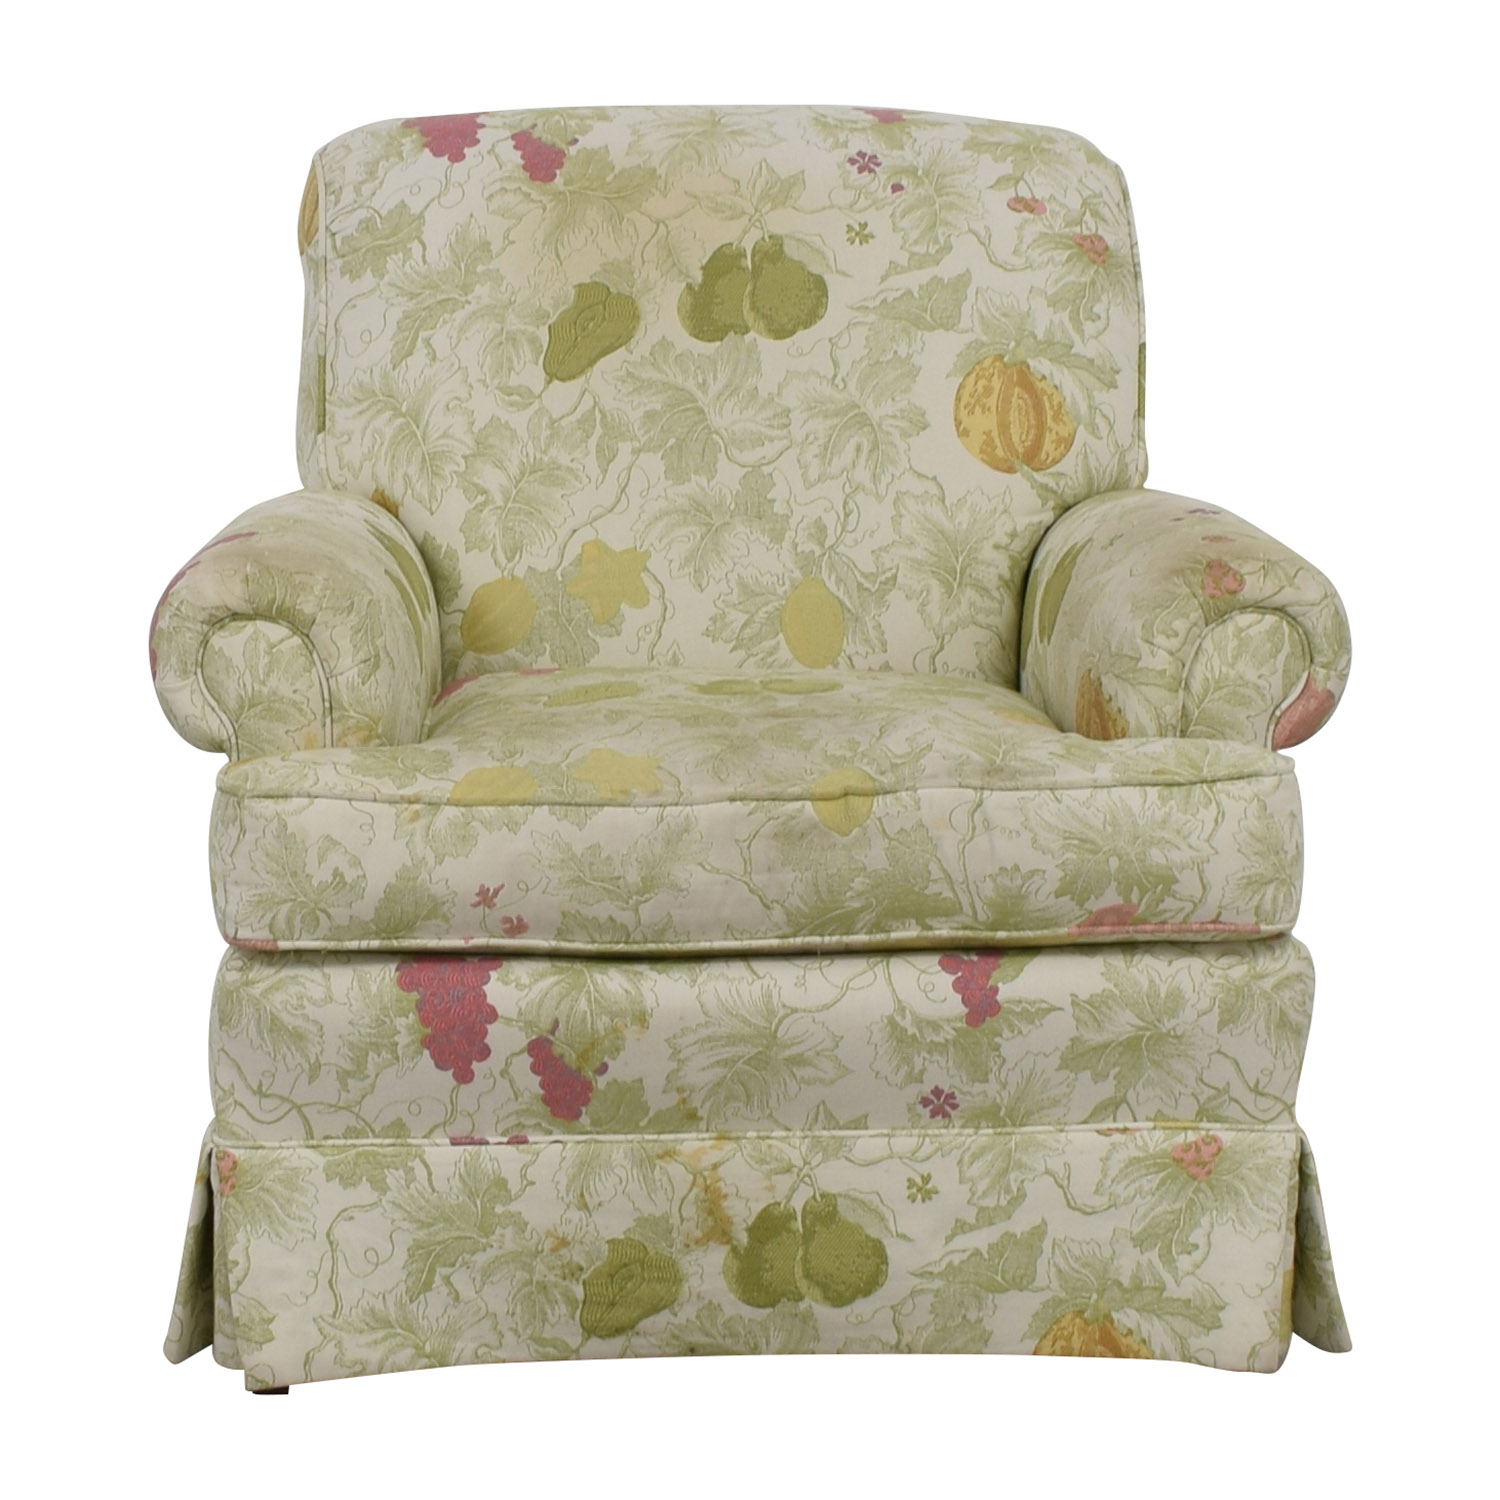 shop Sherrill Fruit Patterned Accent Chair Sherrill Accent Chairs